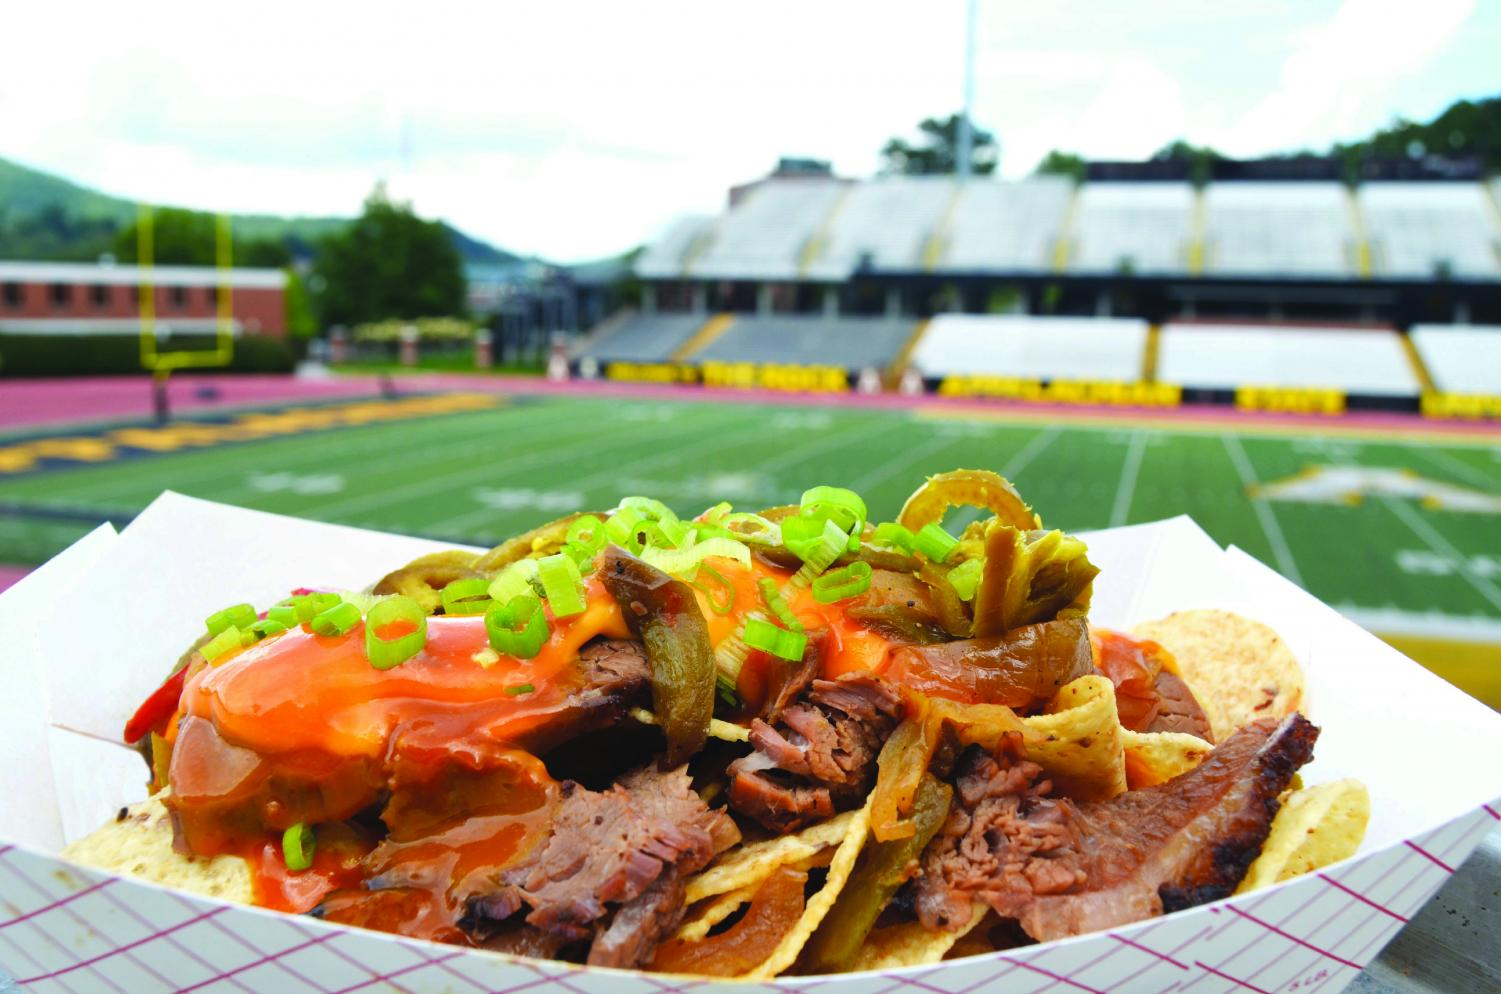 One of the featured dishes is brisket loaded nachos, which will be sold at the Smoke House: Hall of Fame stand. The menu was created by executive chef Tony Bates, who pulled barbecue inspiration from the Deep South. Courtesy of Food Services.